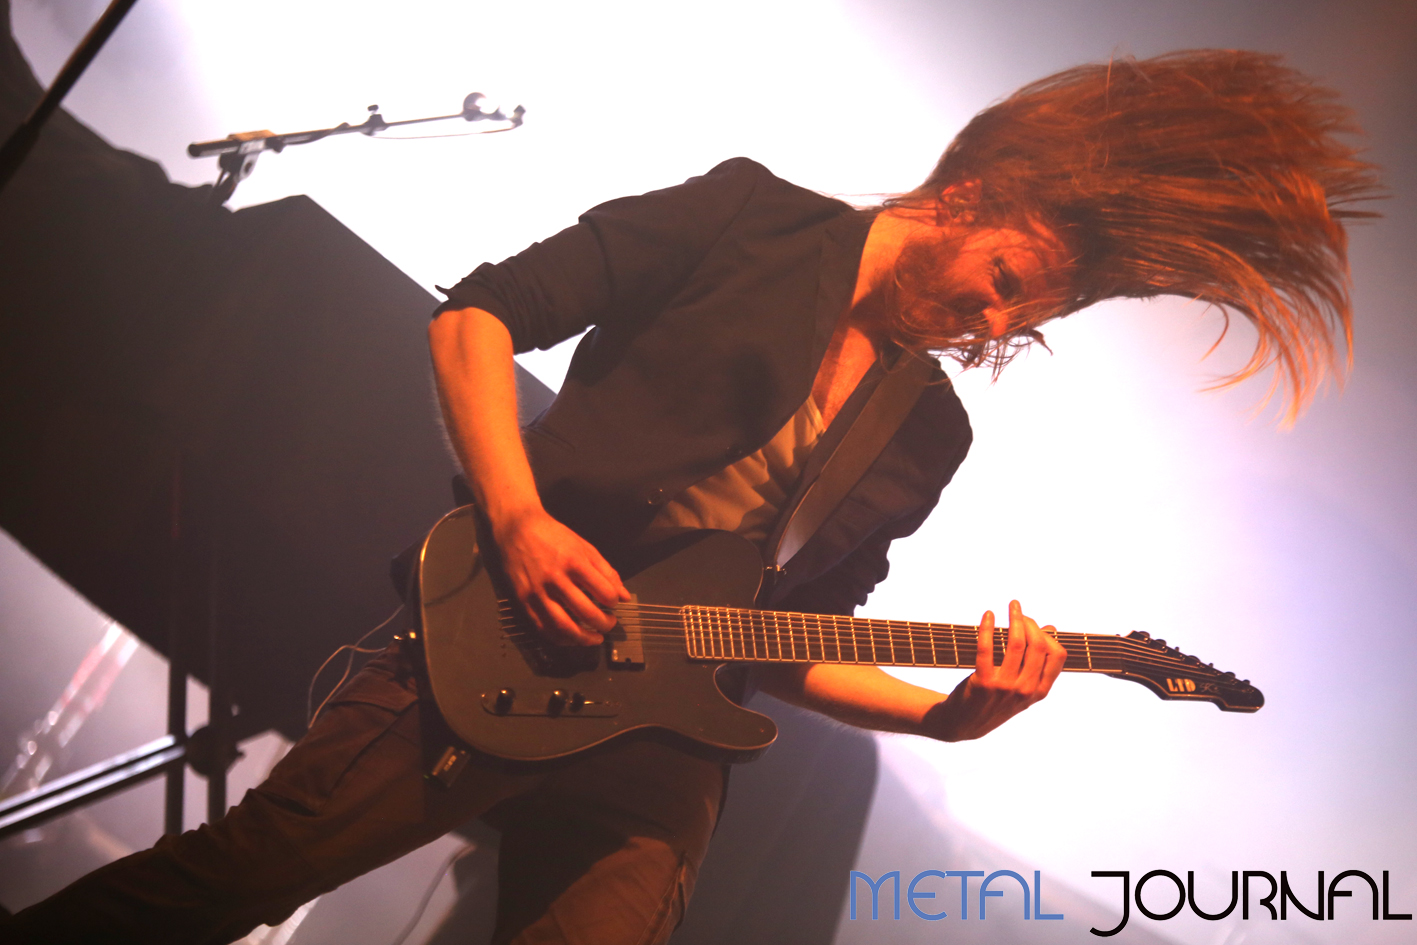 vola - metal journal 2019 pic 2